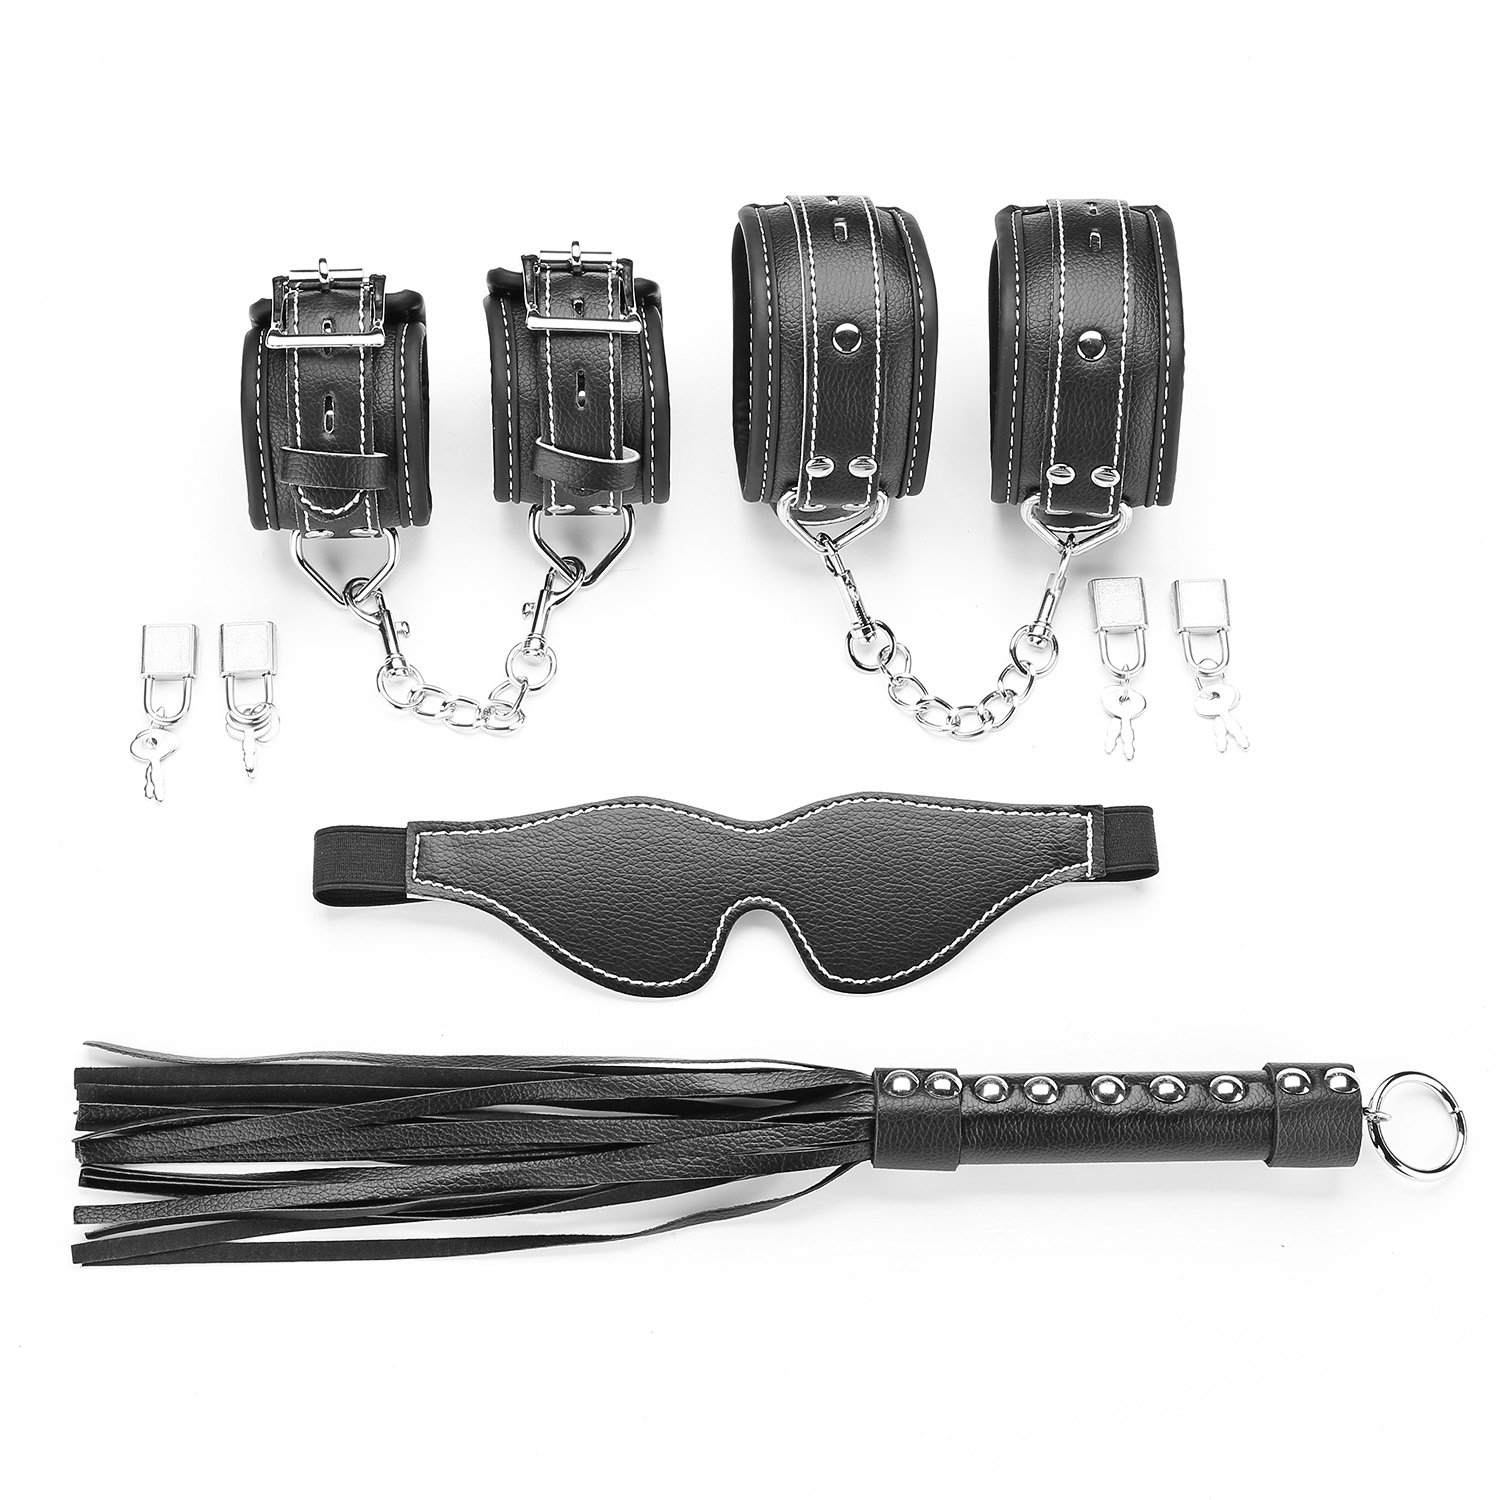 exreizst Adjustable Leather Cuffs for Ankle-Hand-Wrist with Nylon Straps Set